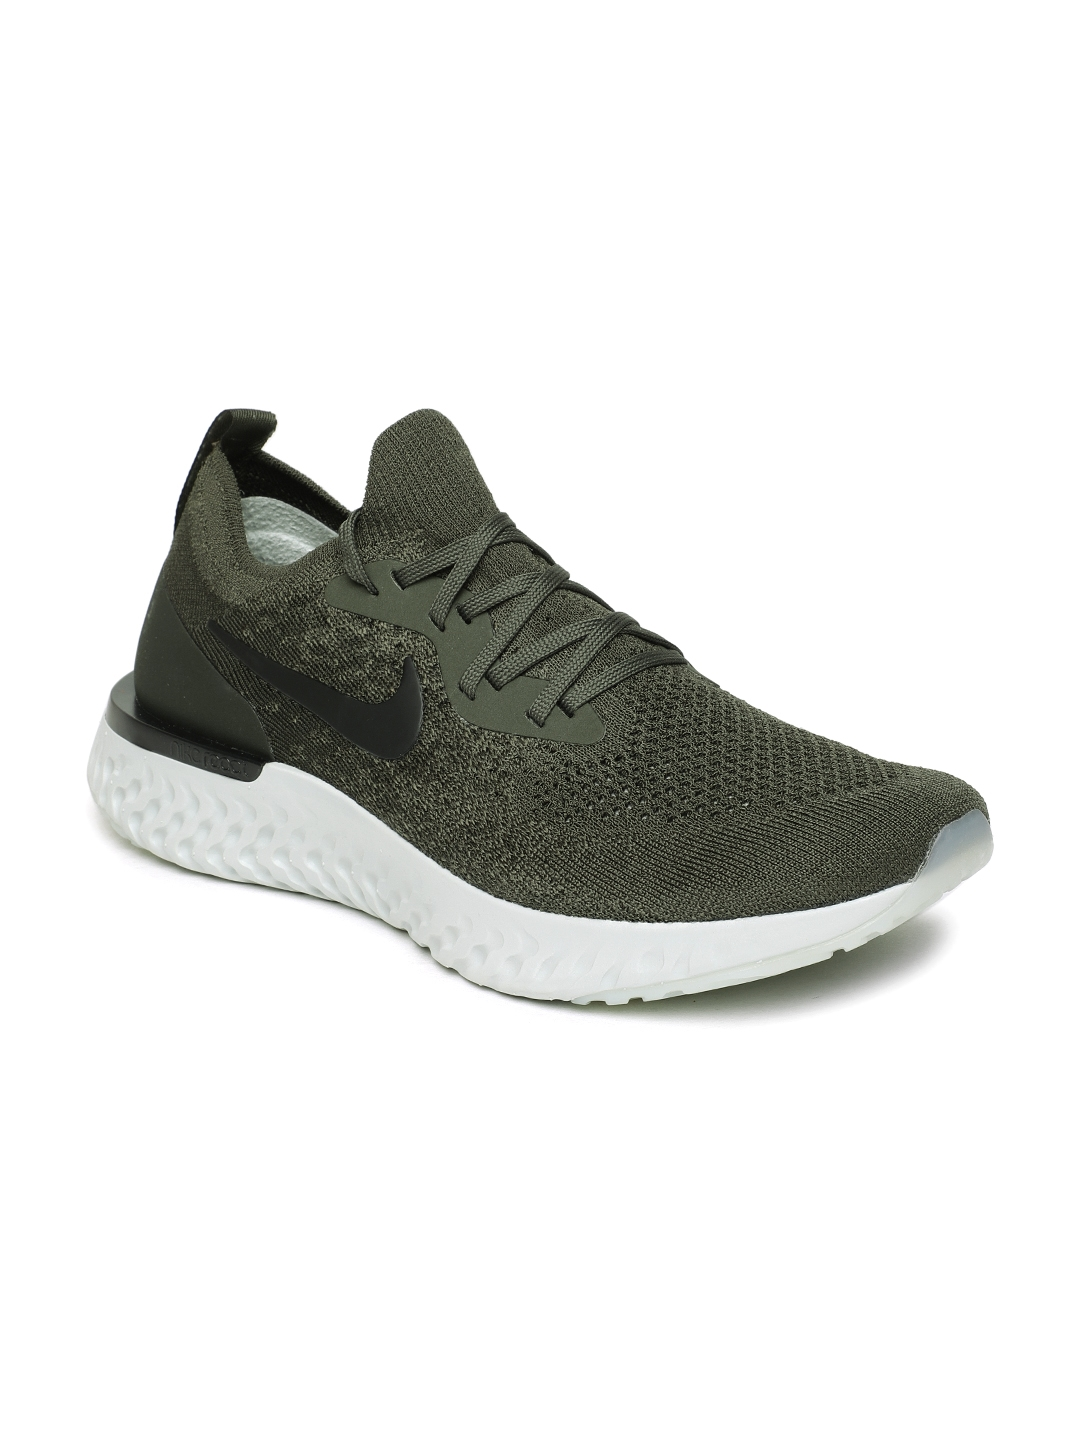 3e7fc3a3c73a4 Buy Nike Men Olive Green Epic React Flyknit Running Shoes - Sports ...